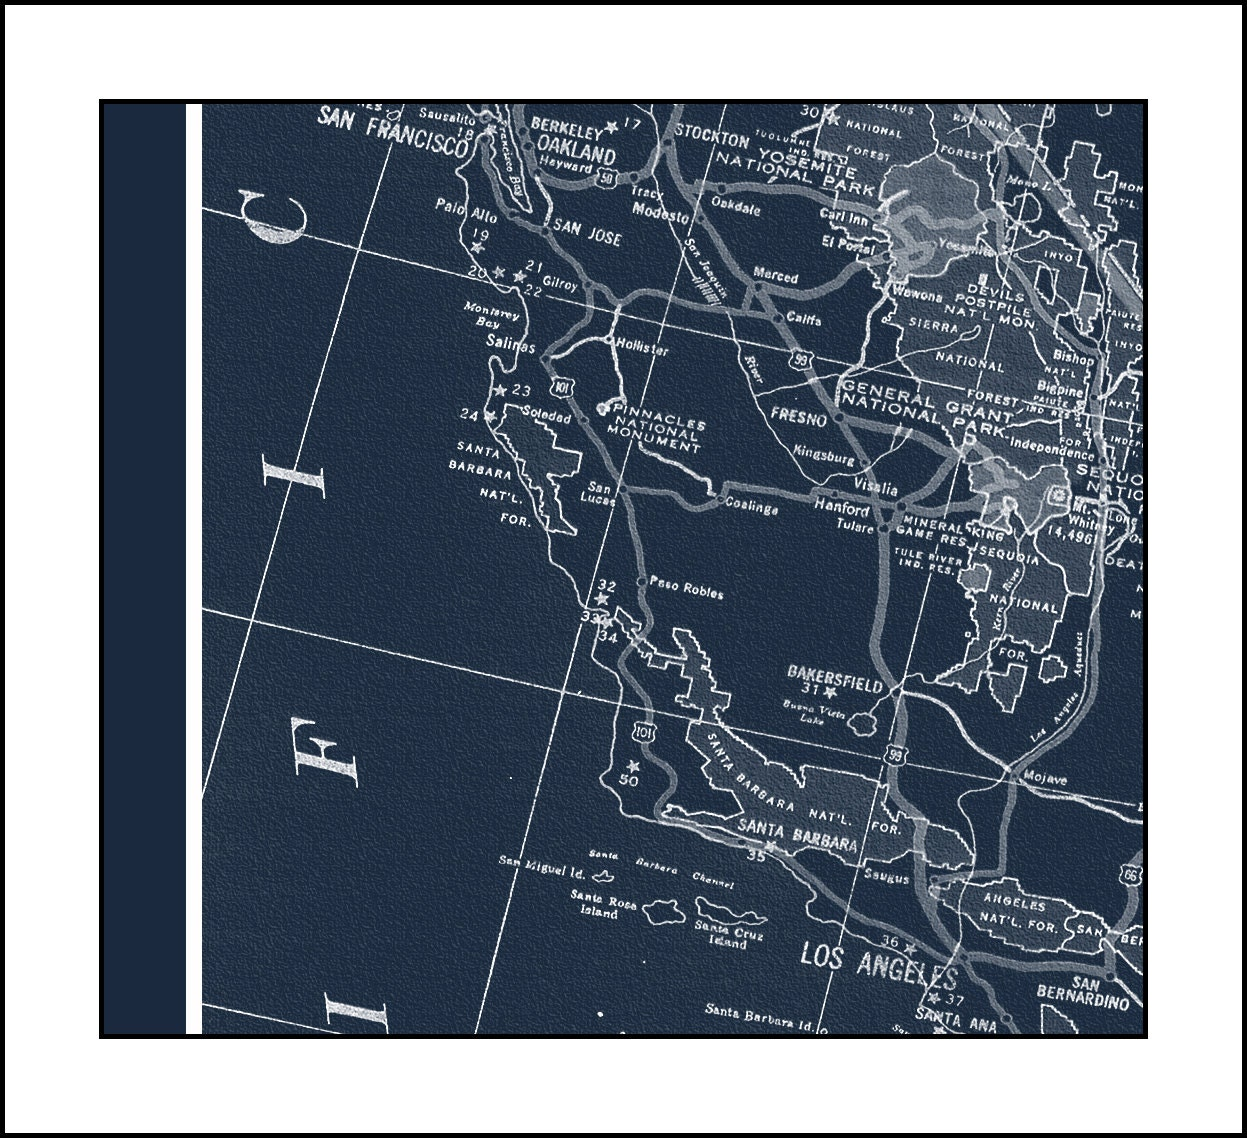 Usa map map of the usa america map vintage map blueprint map usa map map of the usa america map vintage map blueprint map map art blueprint watercolor map map 1936 malvernweather Images